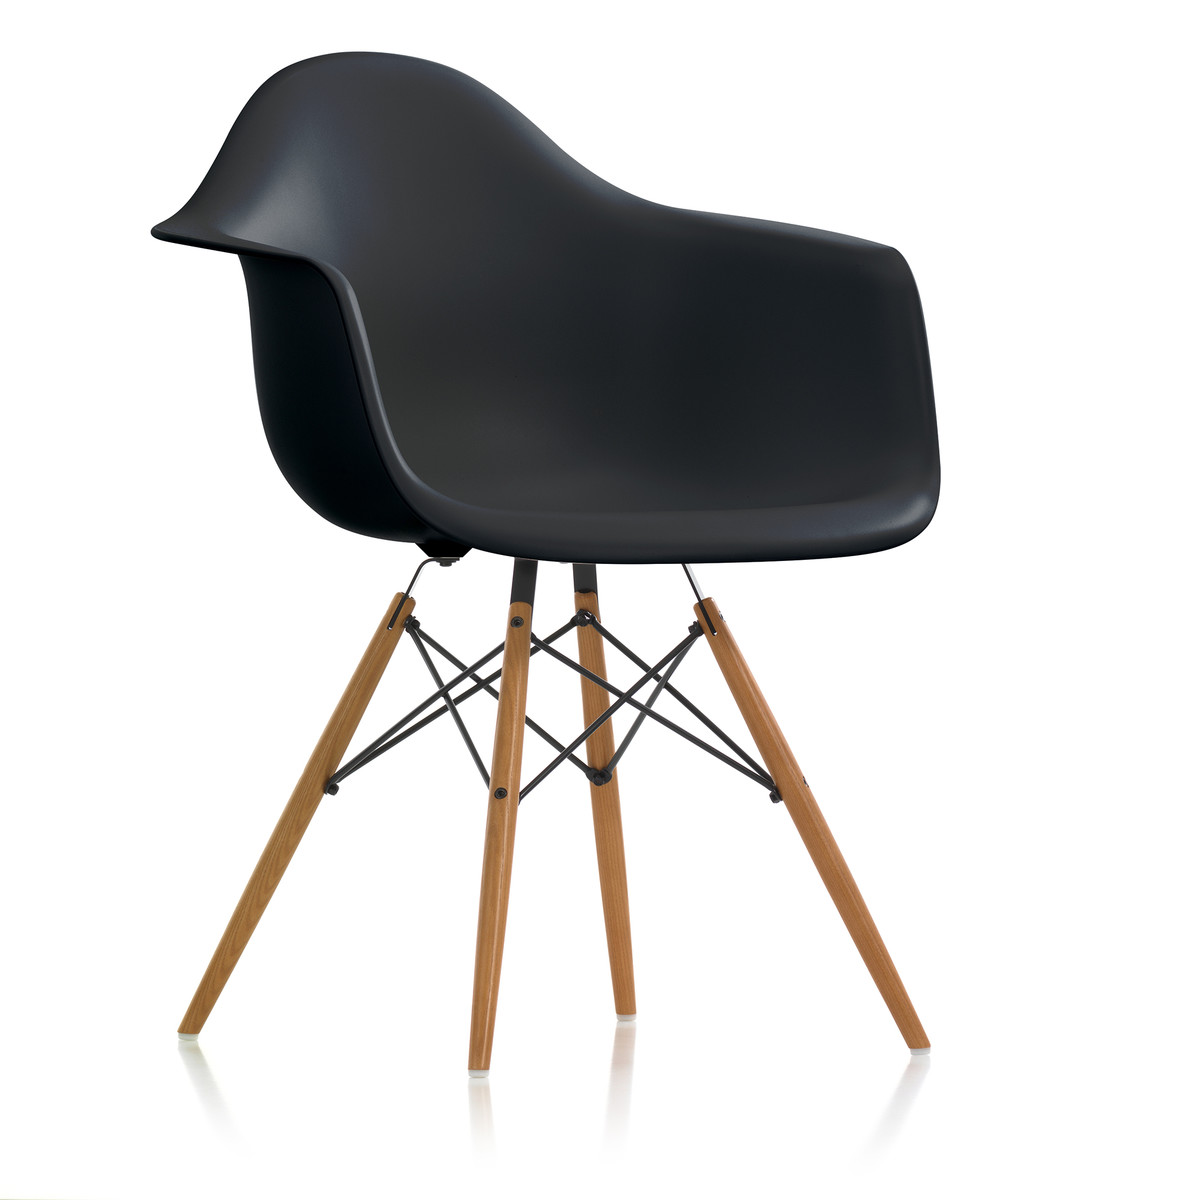 squarcina vitra eames plastic chair daw squarcina. Black Bedroom Furniture Sets. Home Design Ideas